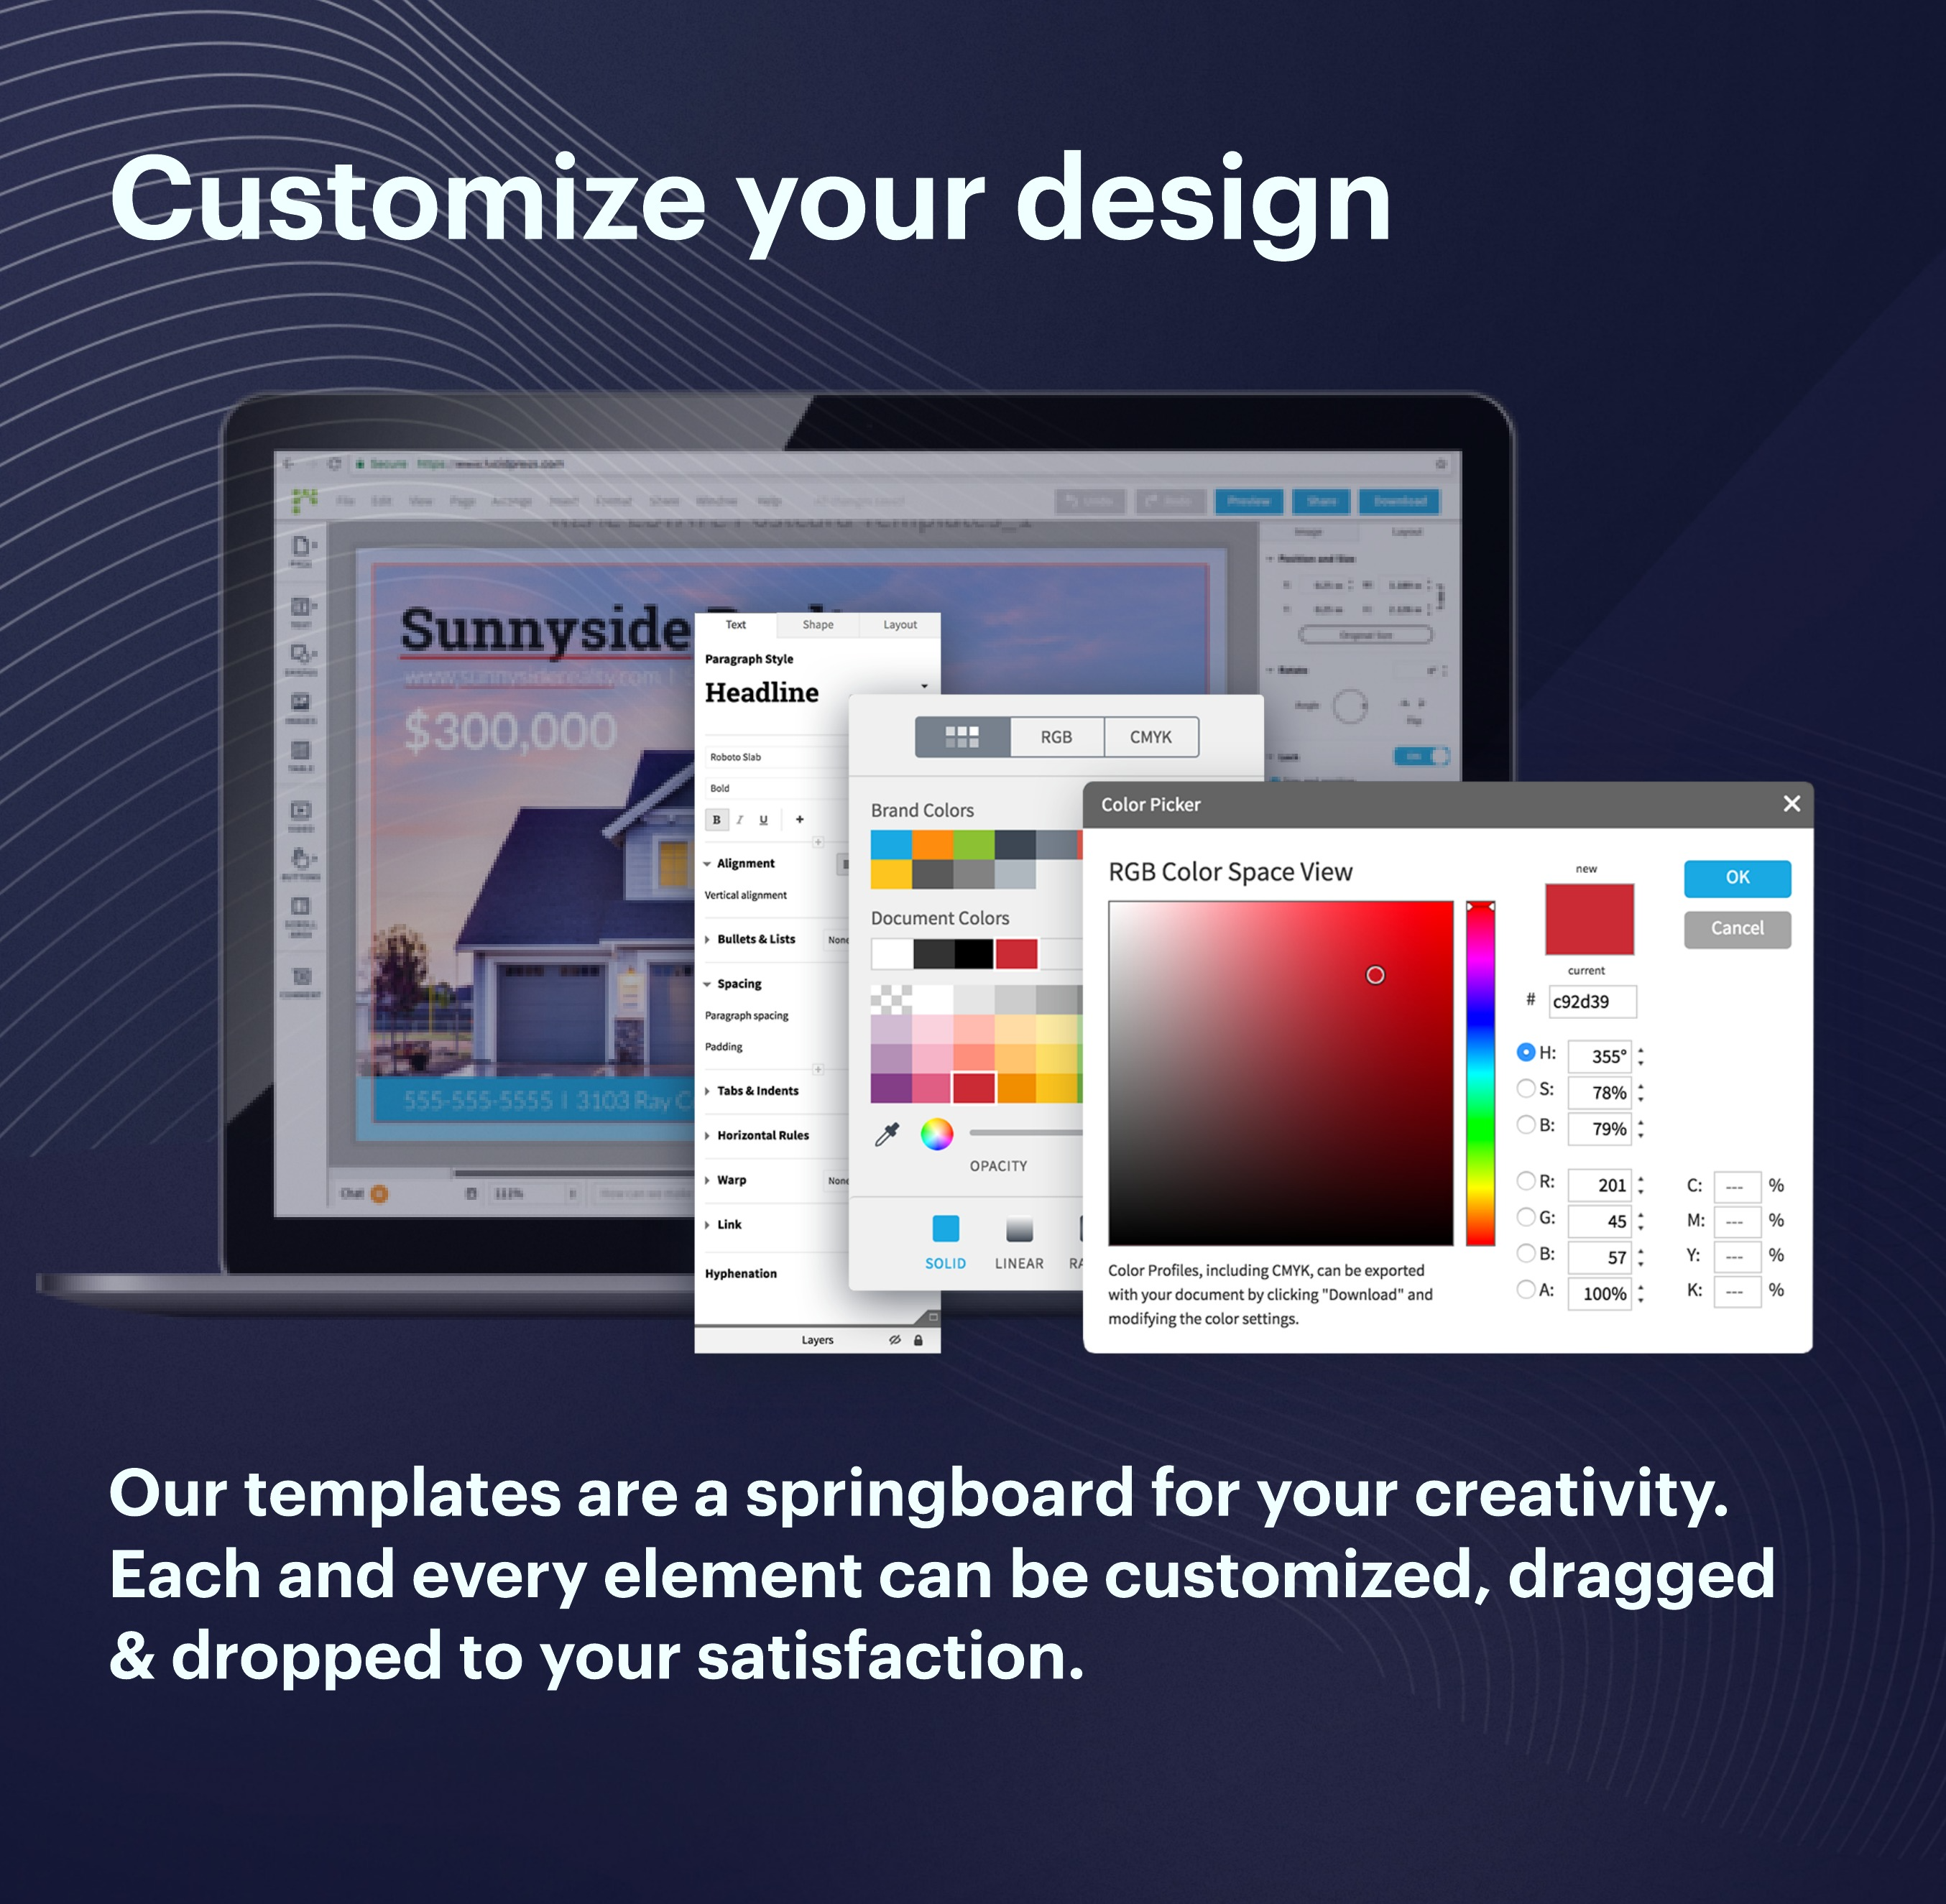 Our templates are a springboard for your creativity. Each and every element can be customized, dragged and dropped to your satisfaction.